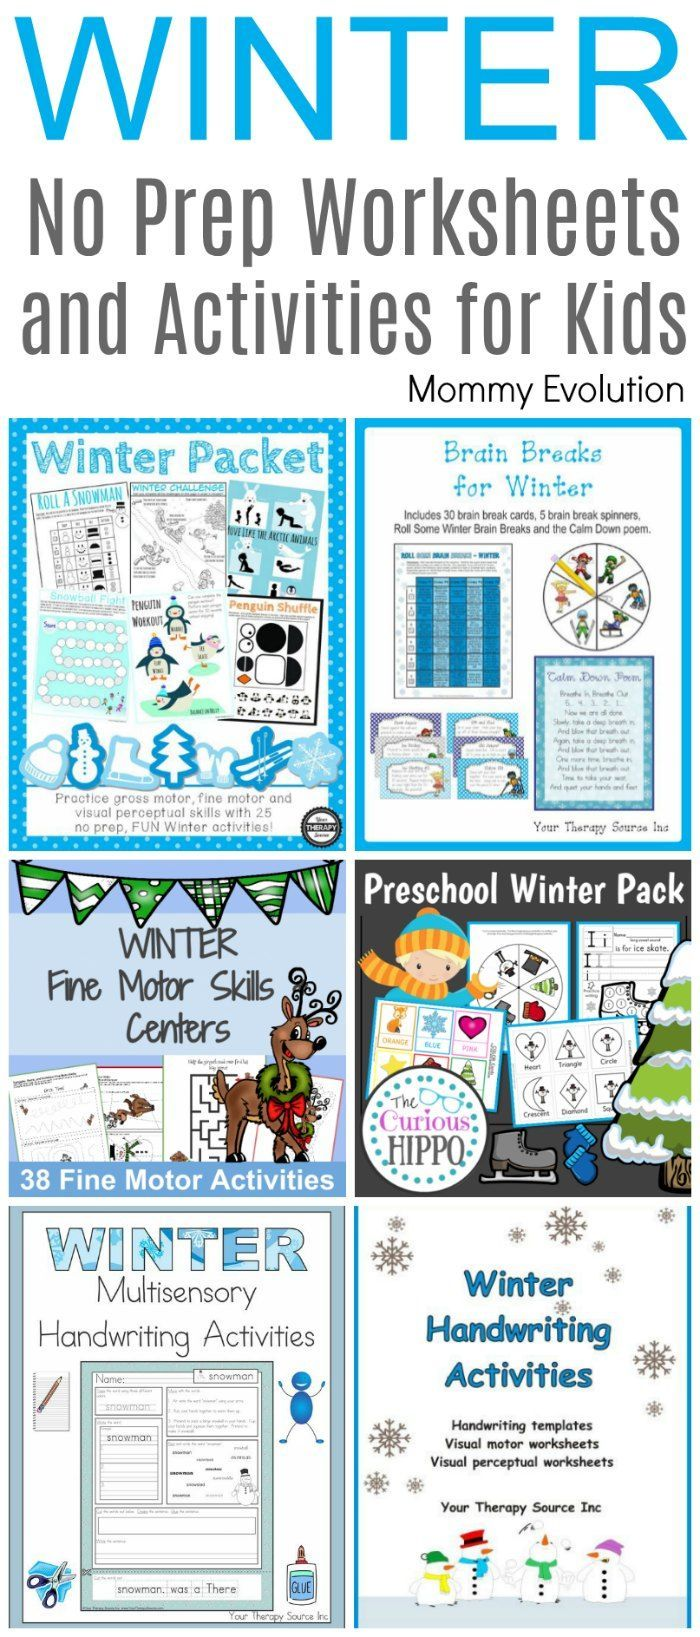 No Prep Winter Worksheets and Activities | After School Activities ...